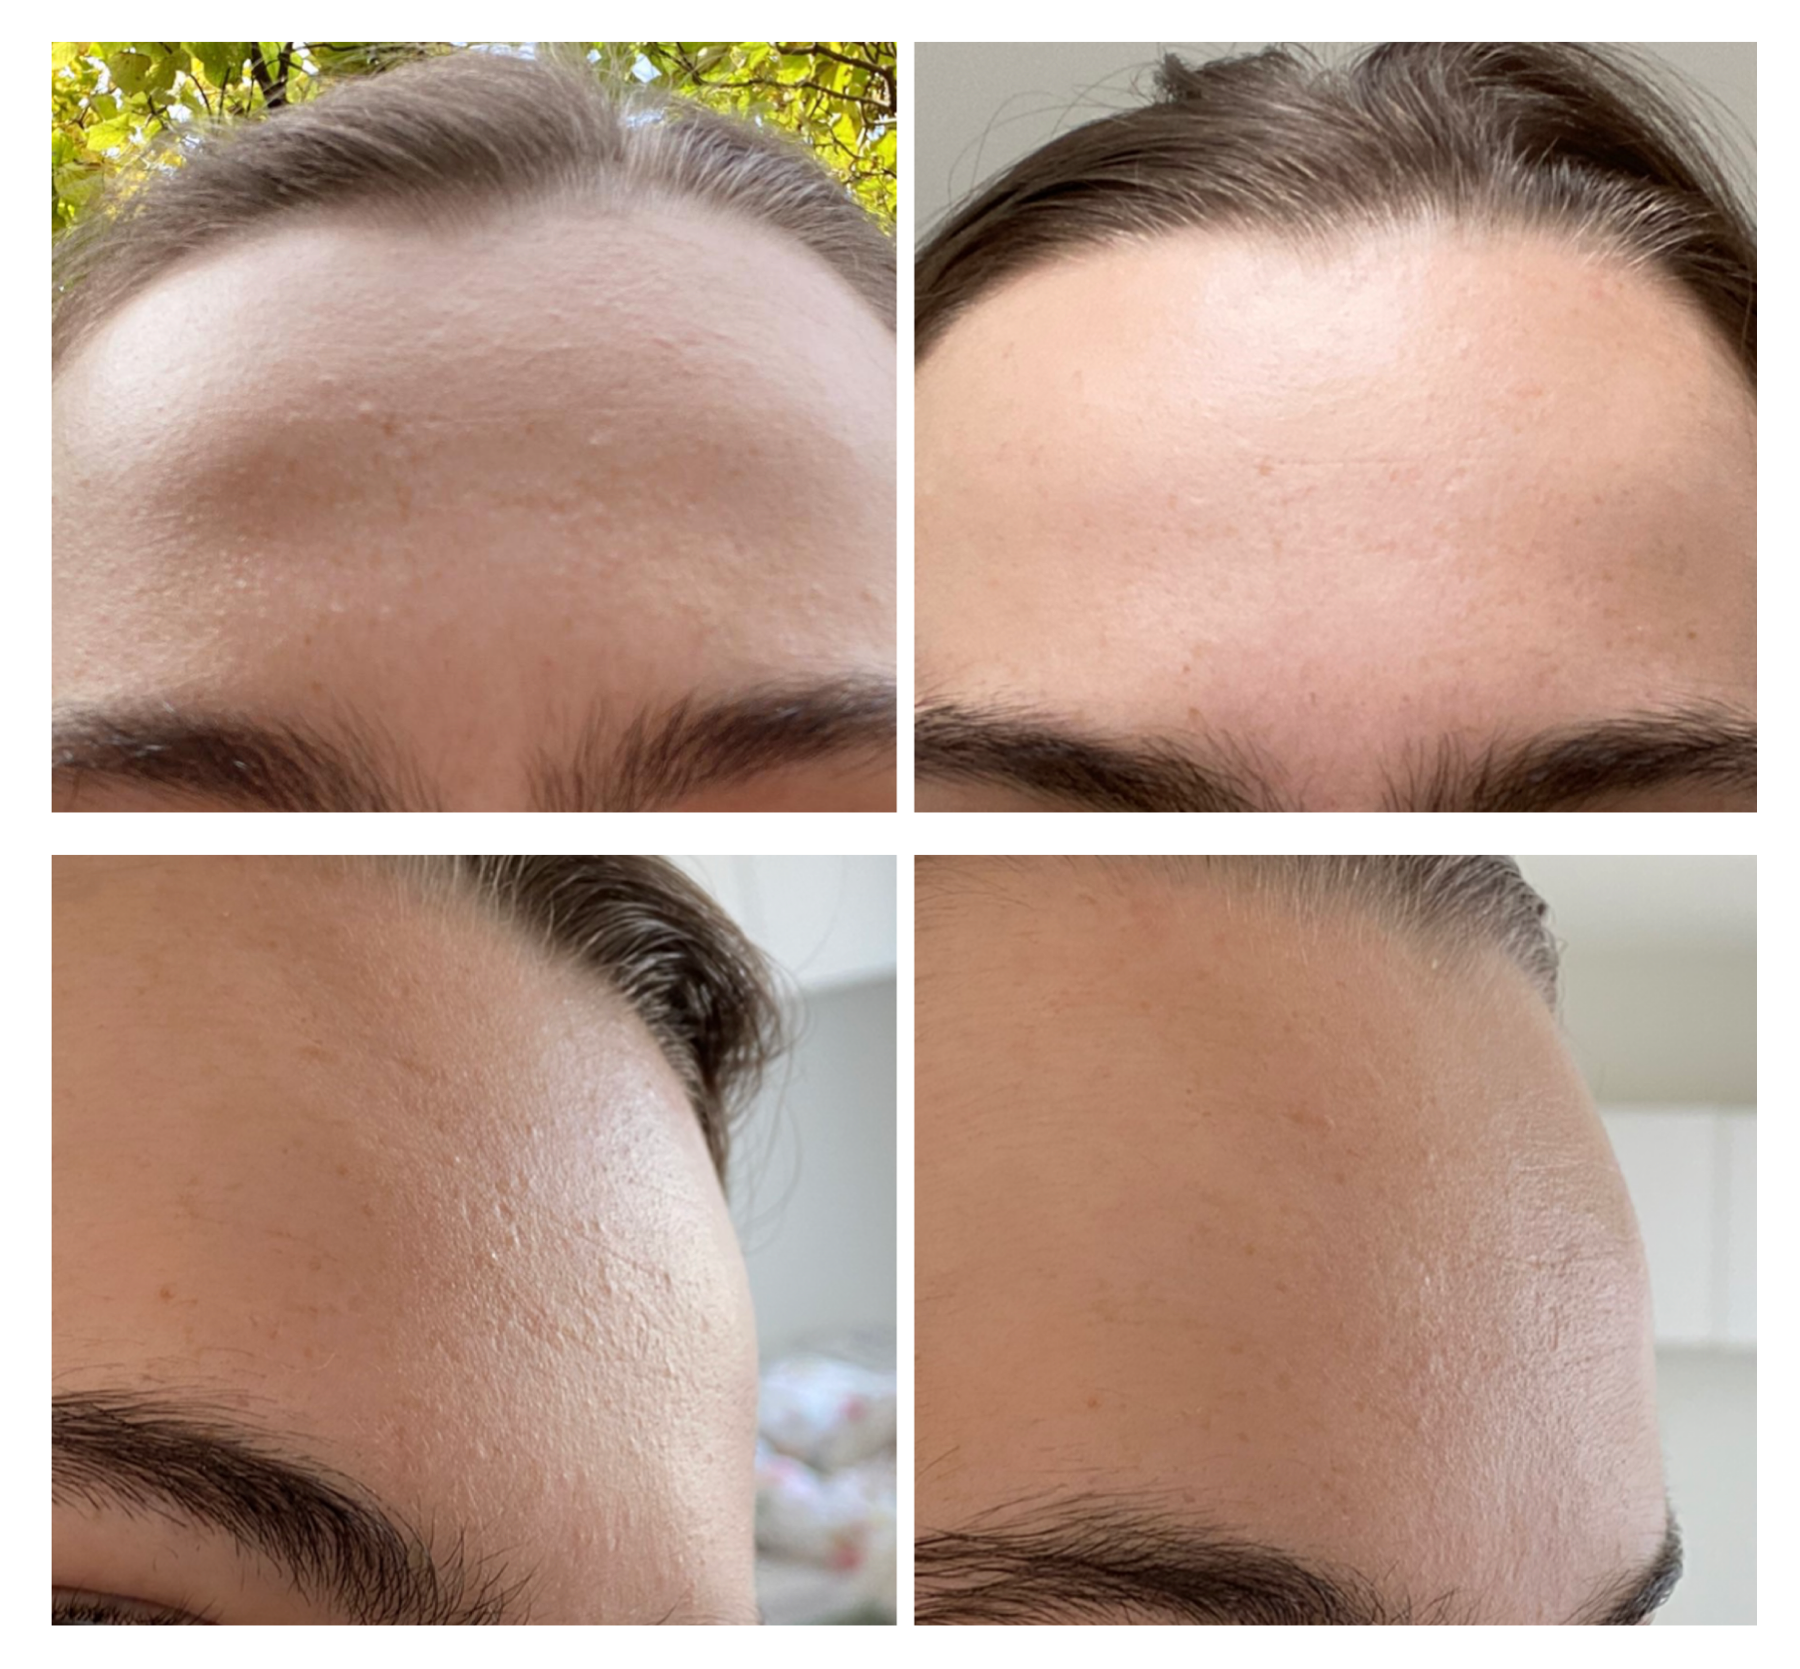 [Before and After] 4 days after I stopped using cerave in the tub my skin is near perfect again. After a couple of months of confusion and stress about my changed skin I never thought this would've been the culprit! It dried out my skin and clogged my pores.